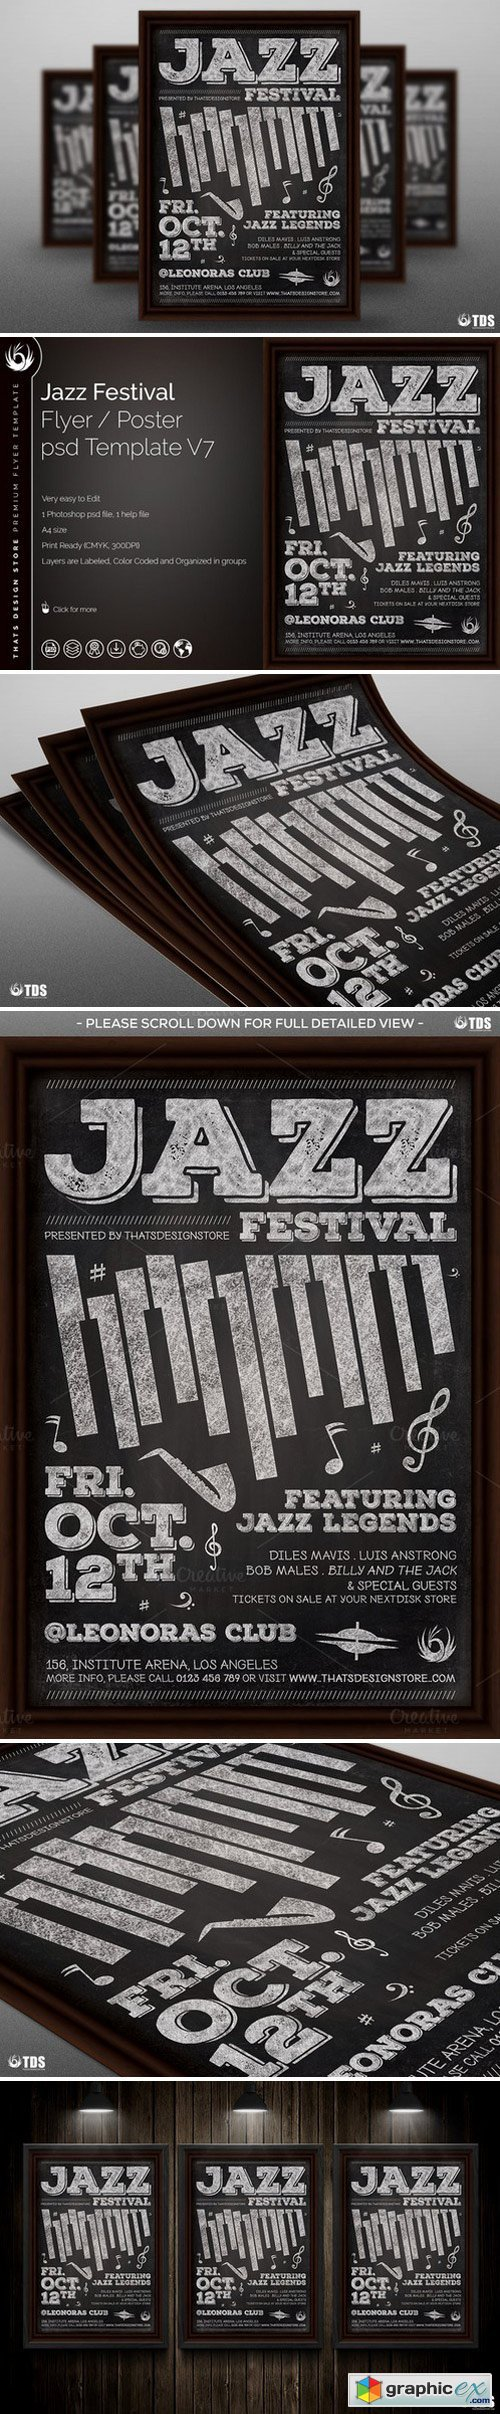 Jazz Festival Flyer Template V7